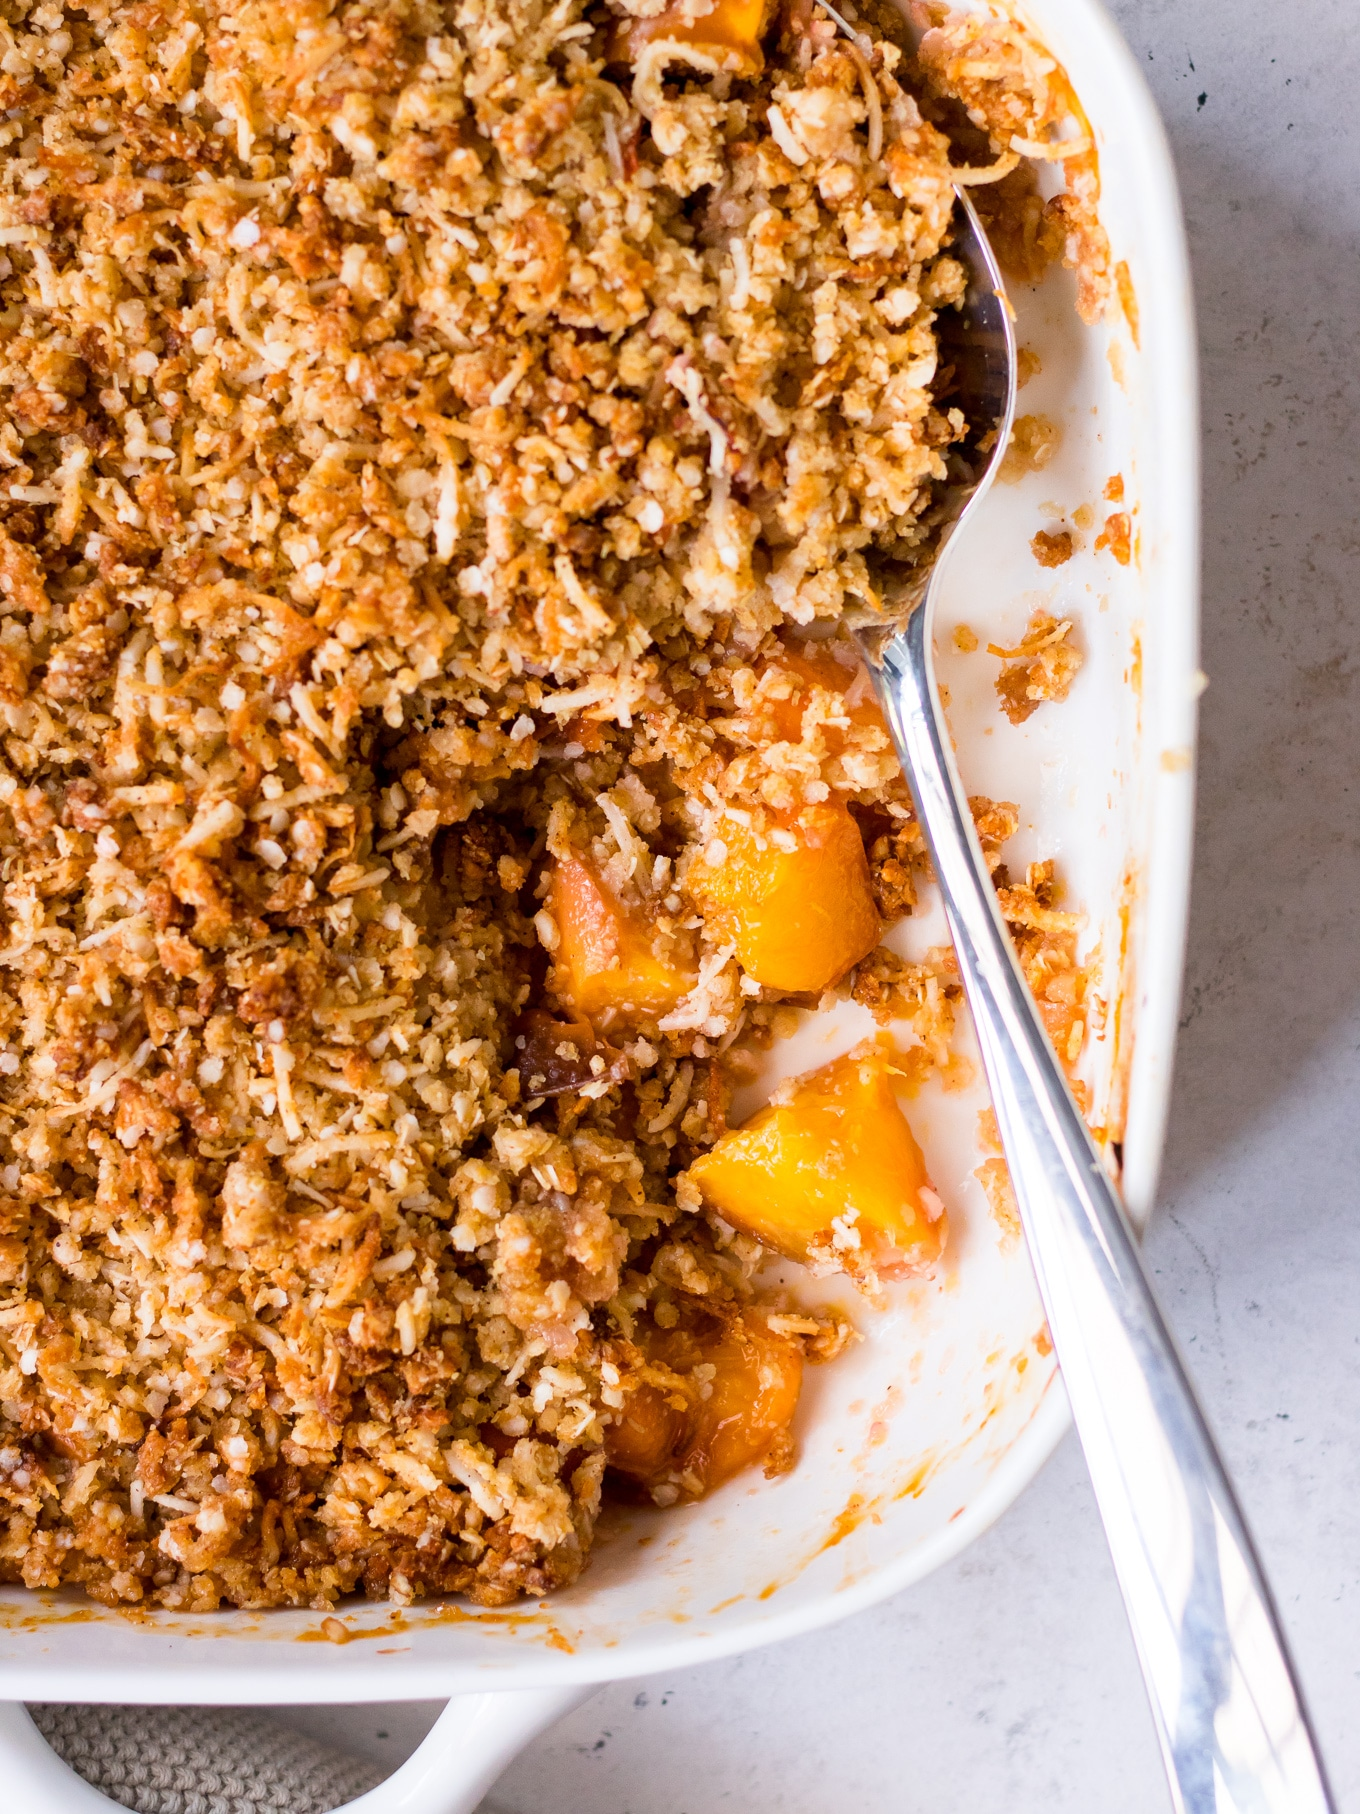 Close up of gluten free crumble topping made with quinoa flakes and coconut